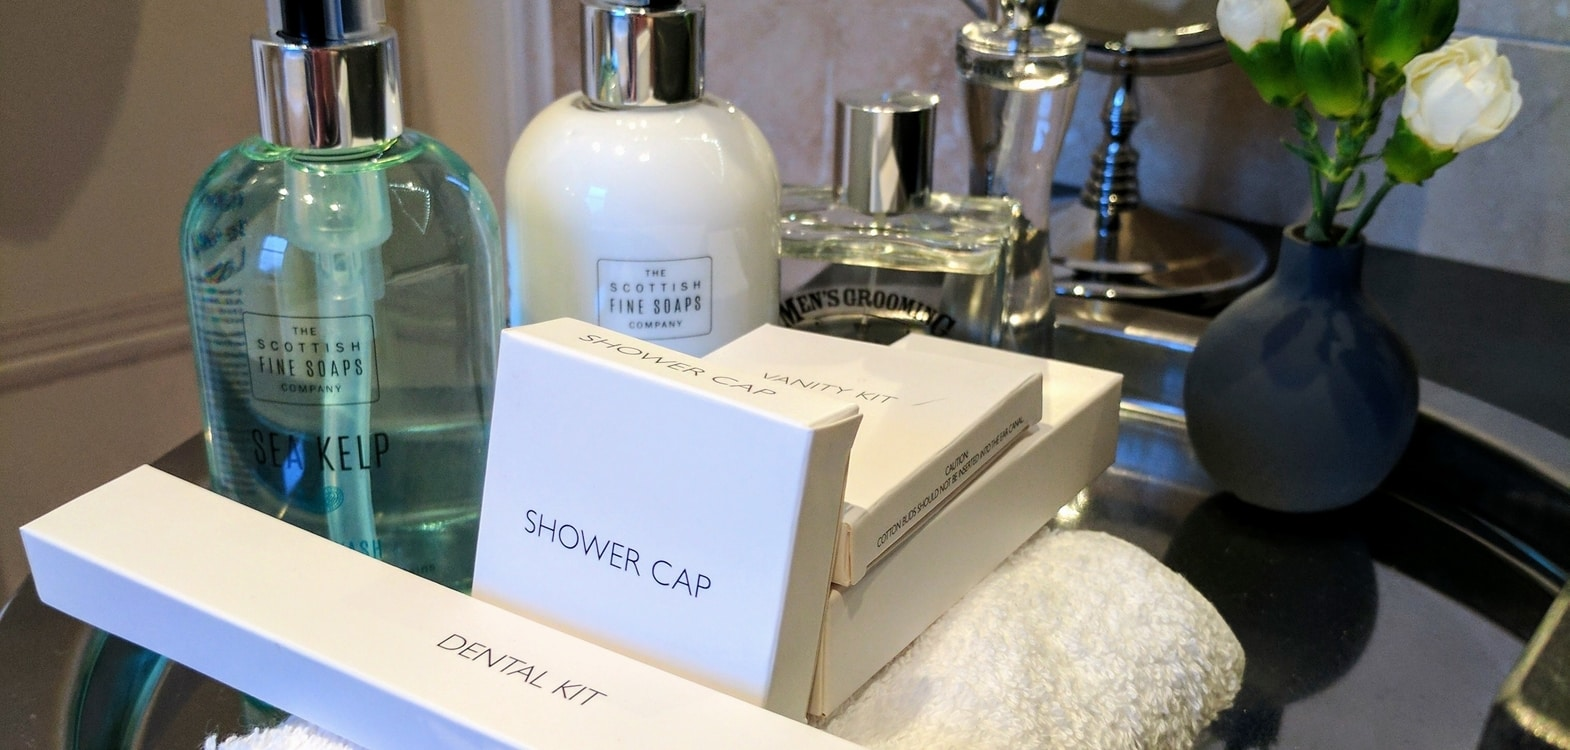 Selection of Scottish Fine Soaps items including shower gel, shower cap, dental kit